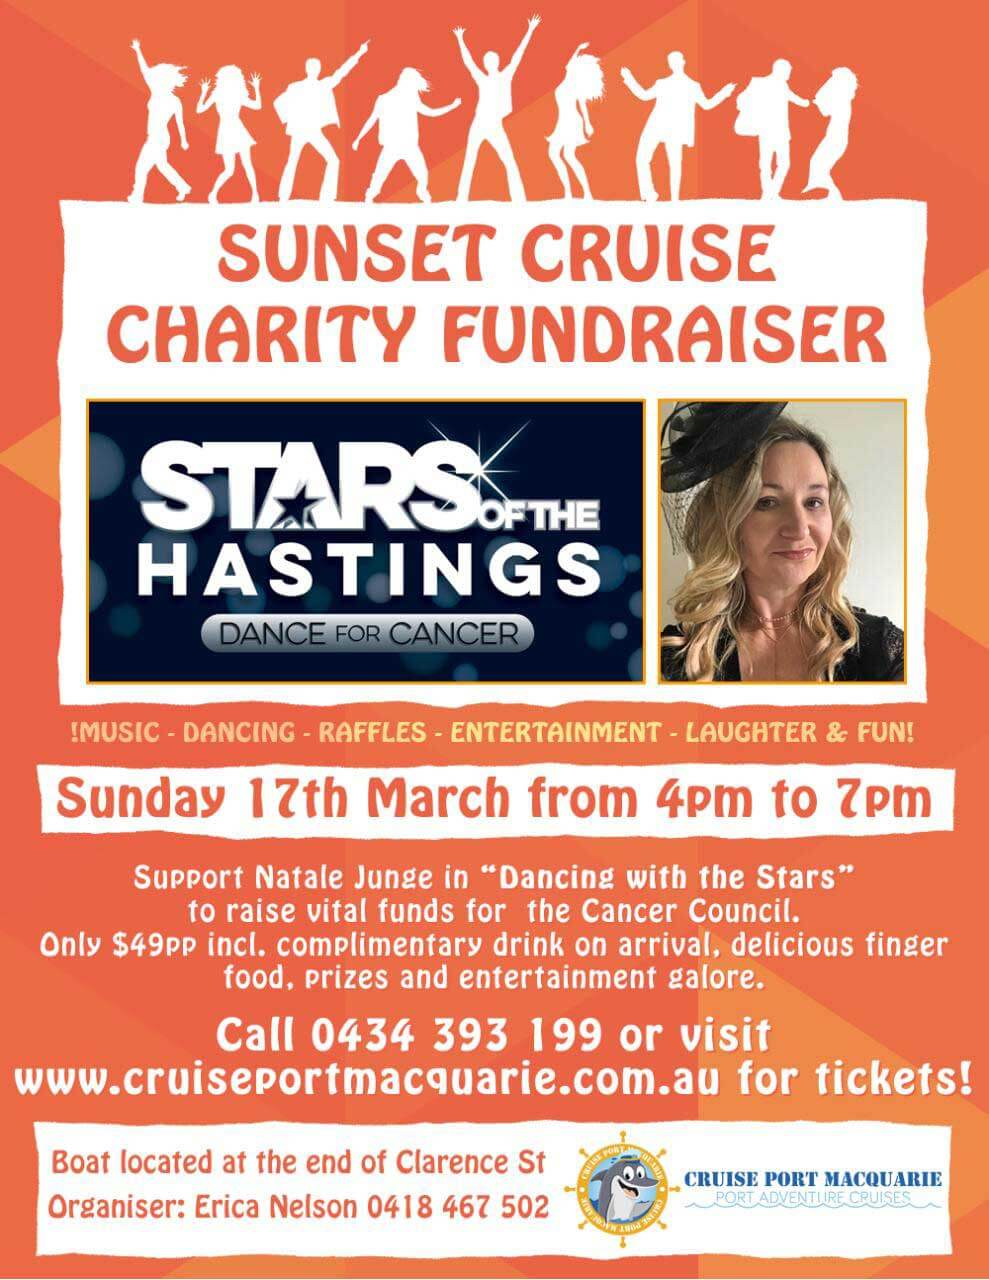 Cancer Council fundraising cruise